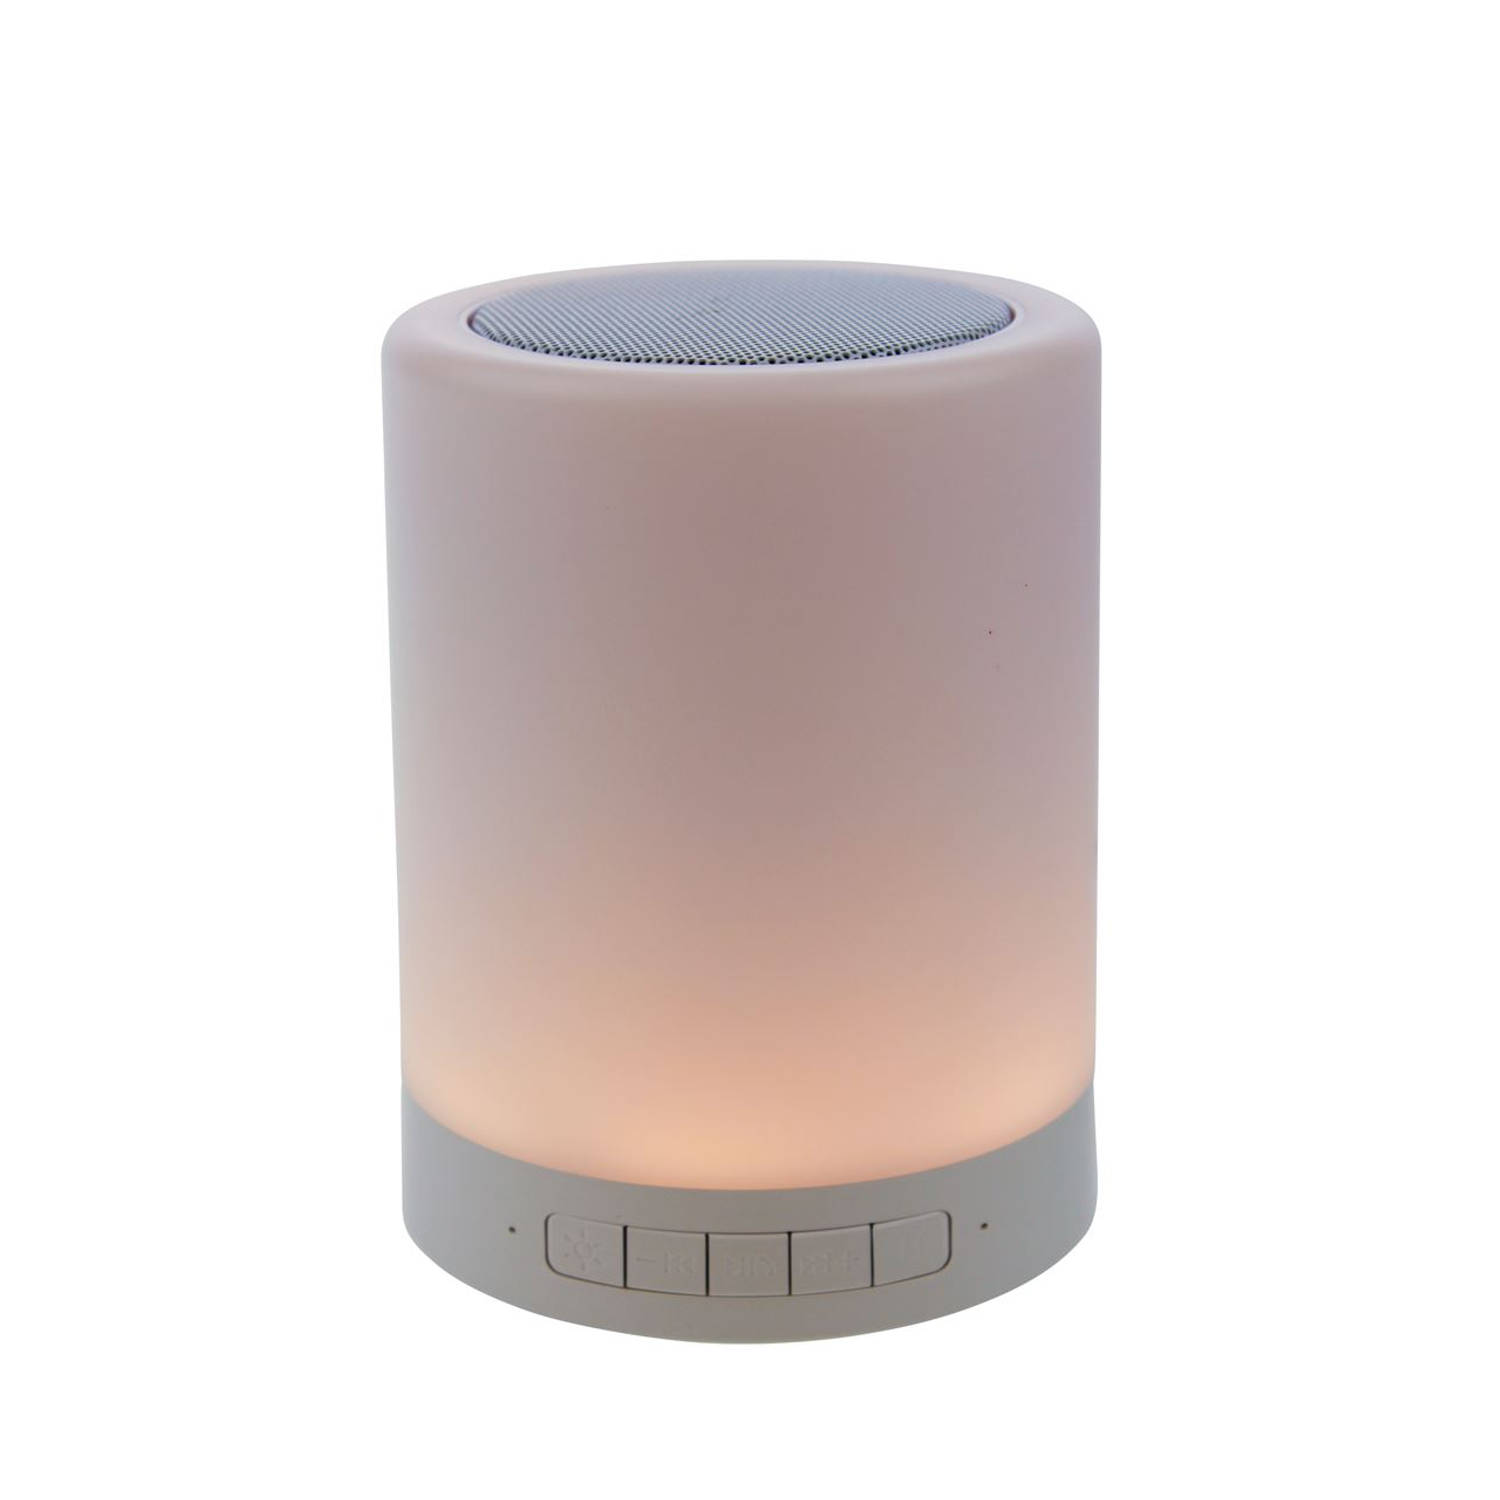 Moodlight Bluetooth Speaker met RGB LED Verlichting